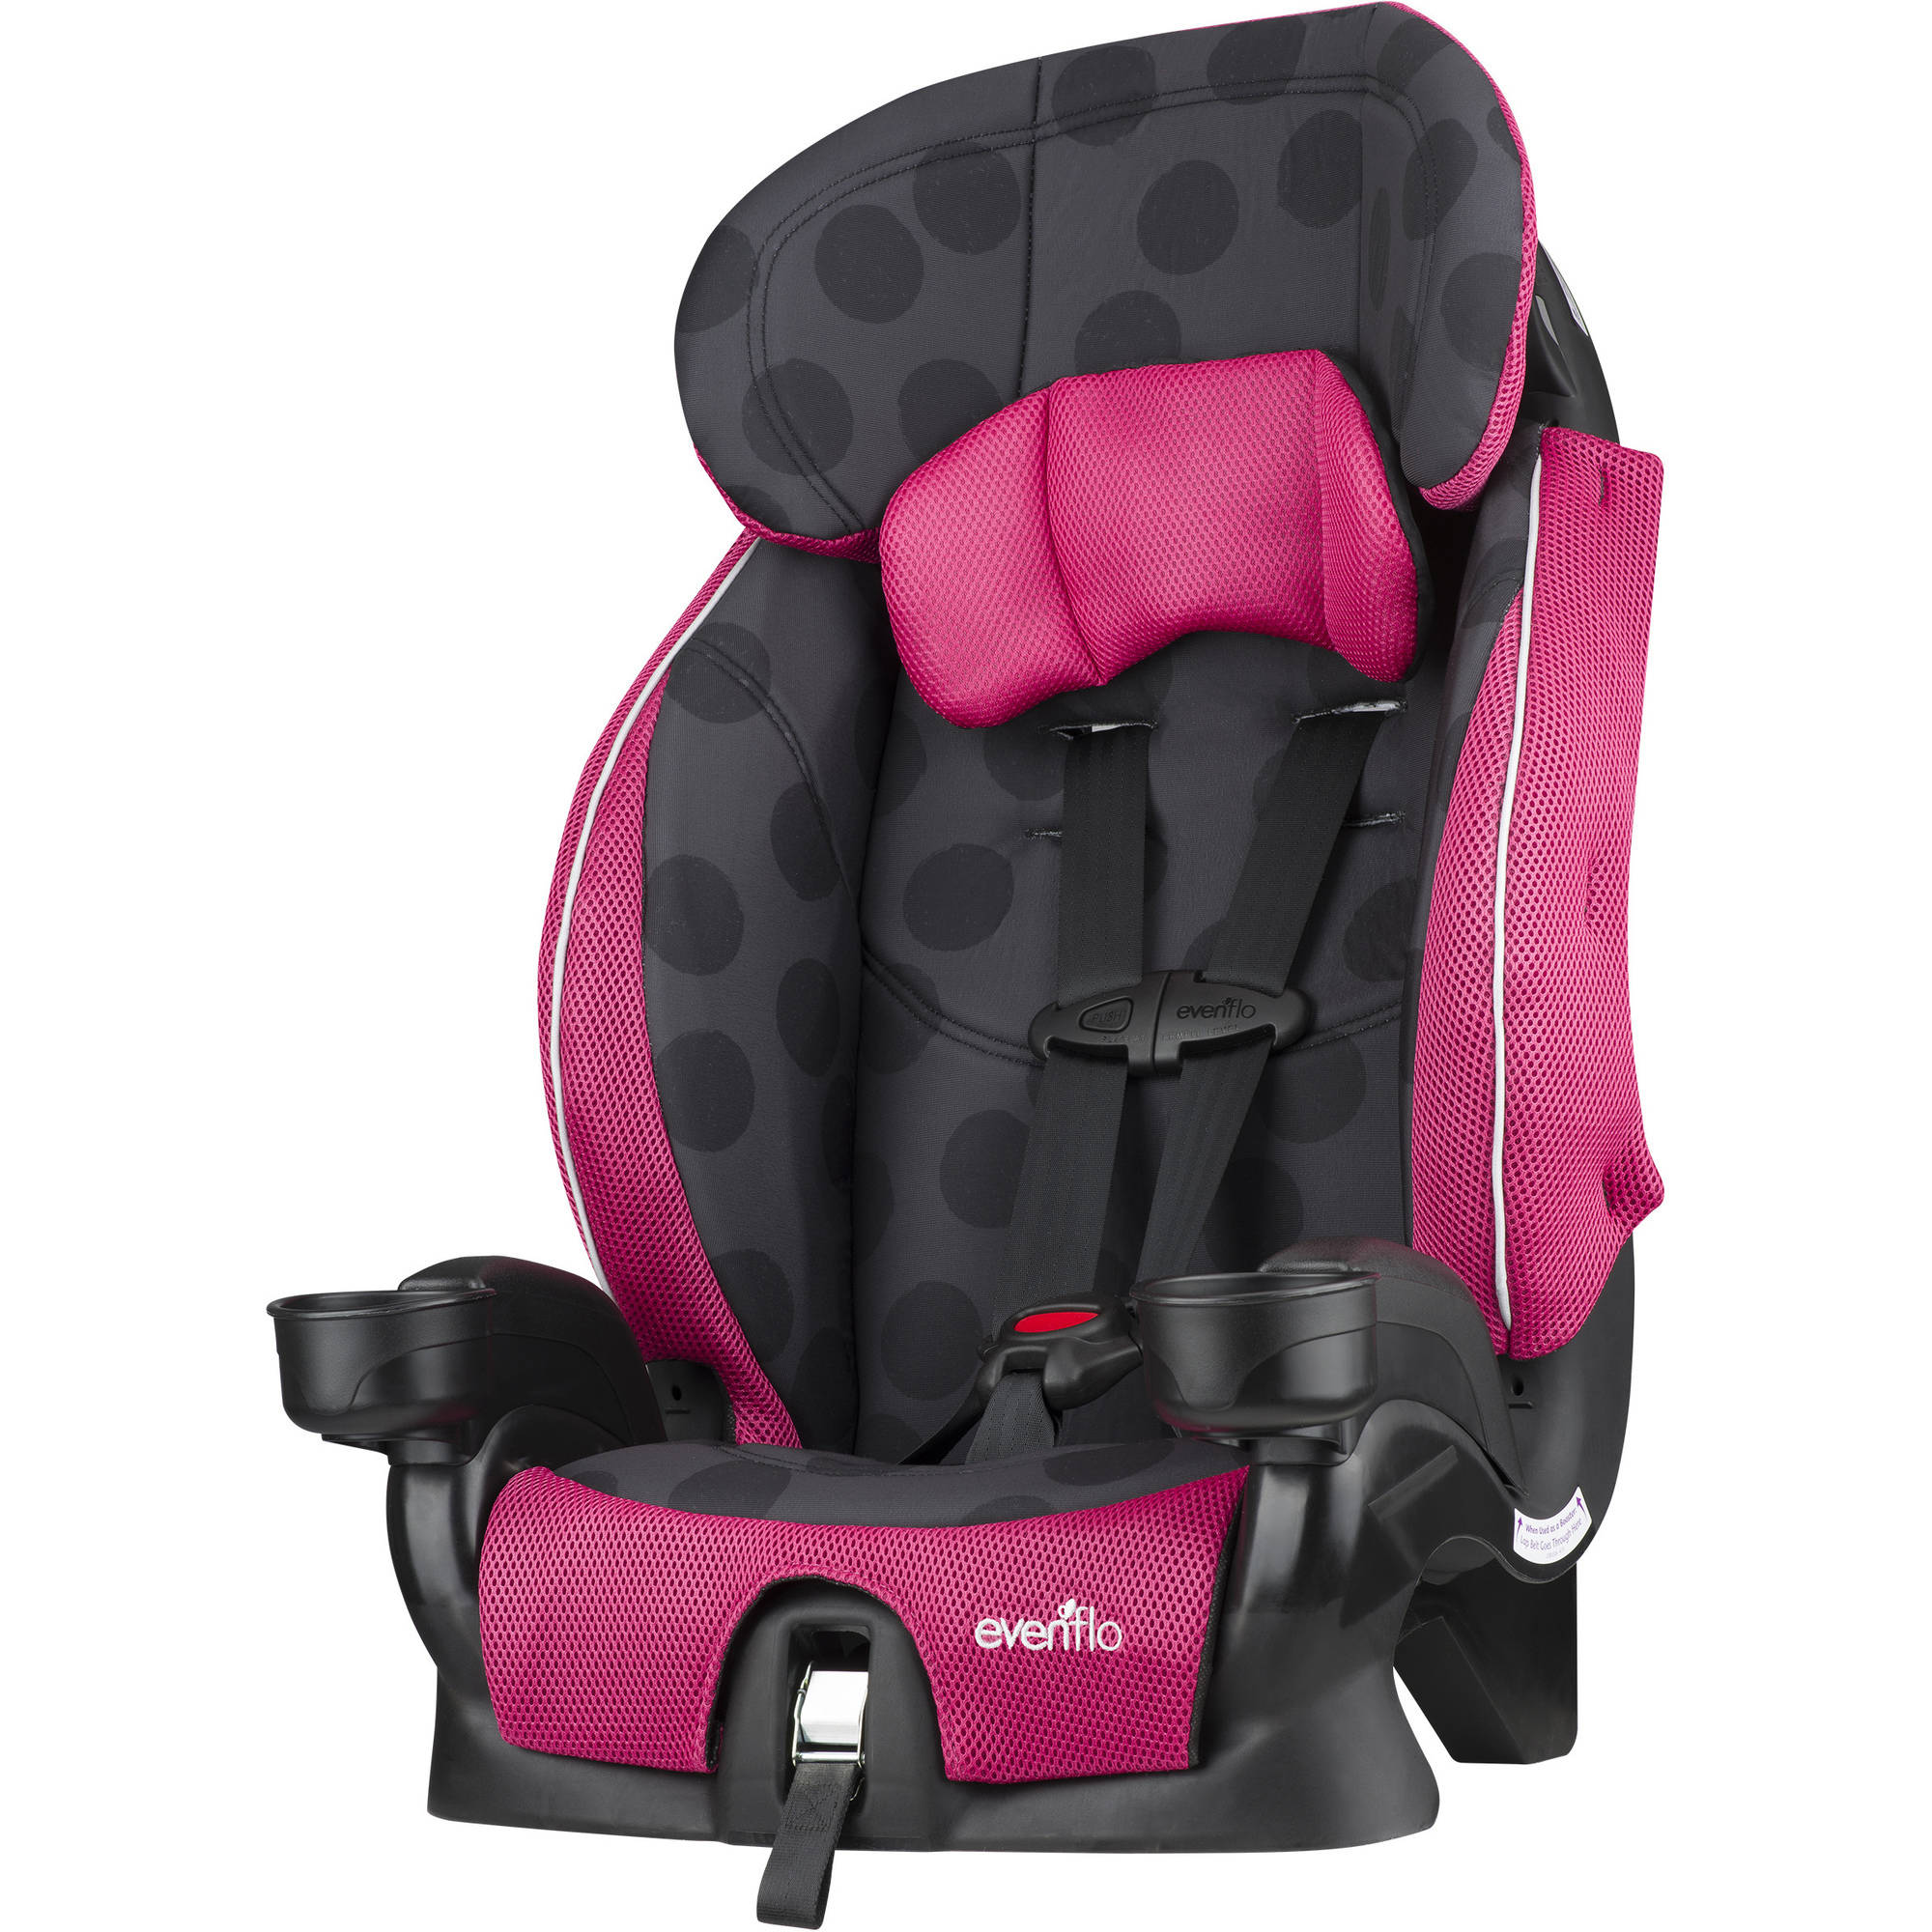 Evenflo Advanced Chase LX Harness Booster Car Seat Twist